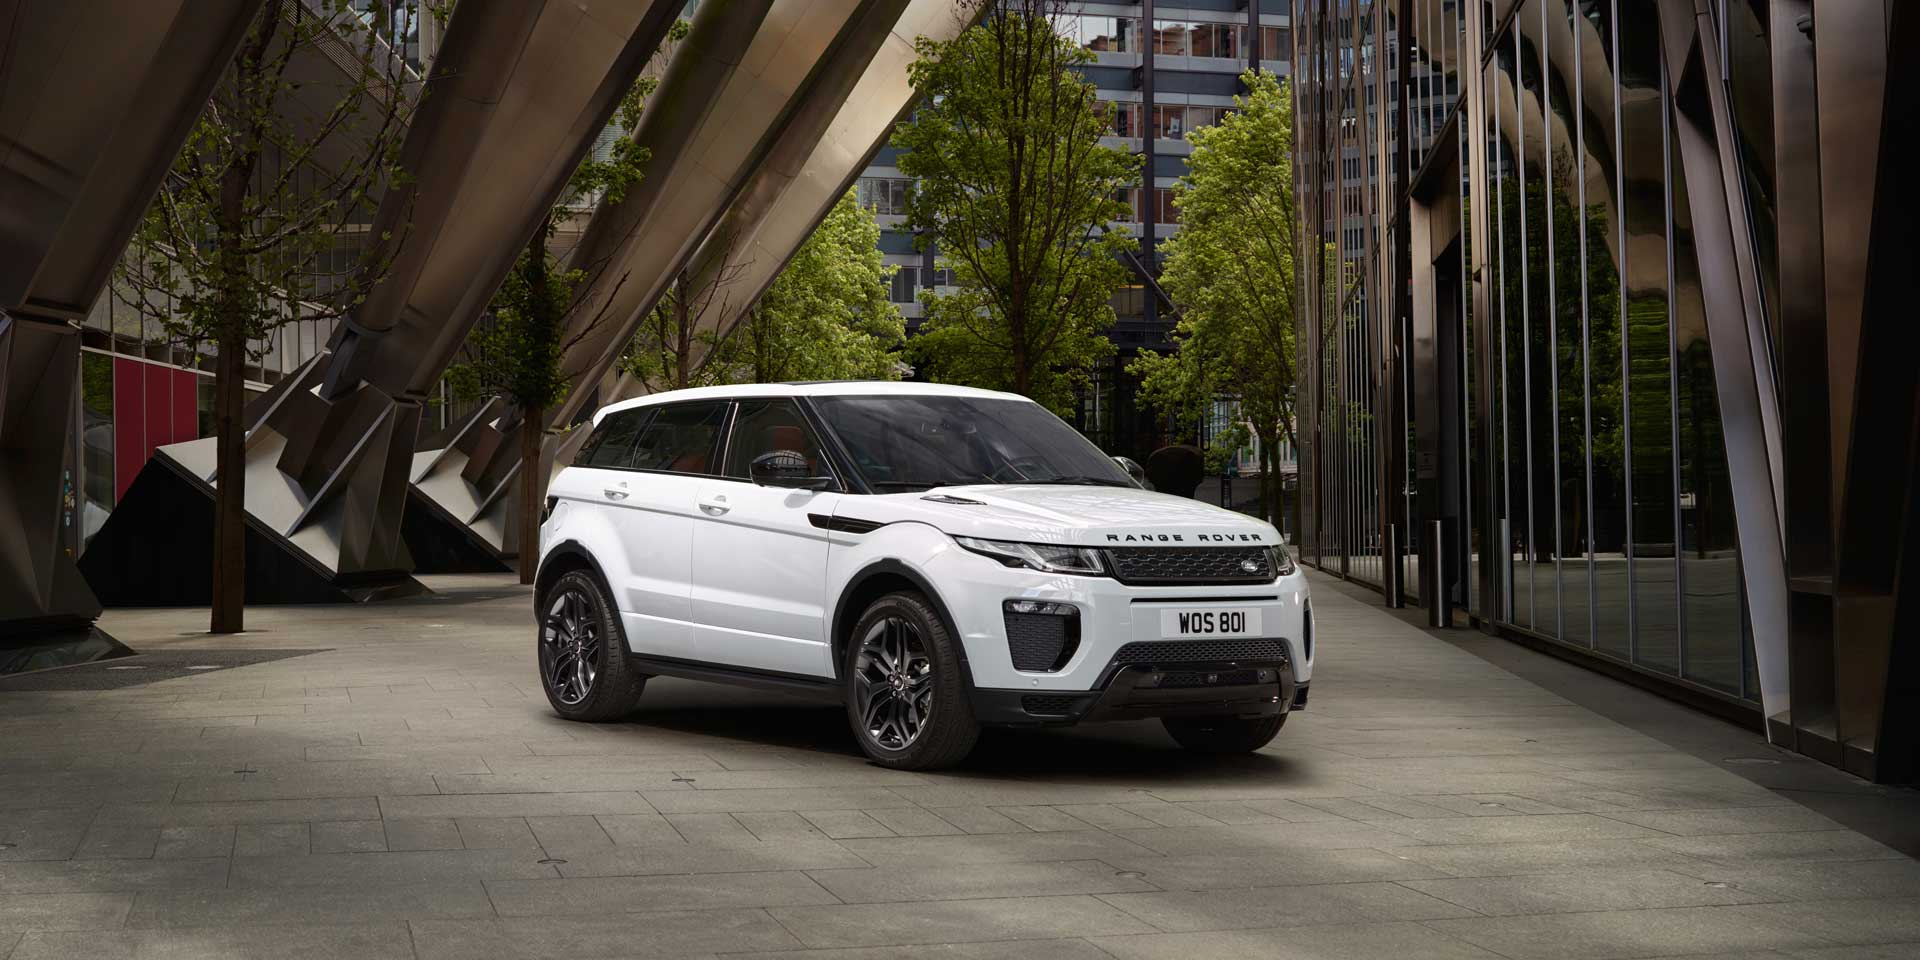 Used Cars For Sale New Cars For Sale Car Dealers Cars Chicago - Land rover local dealer